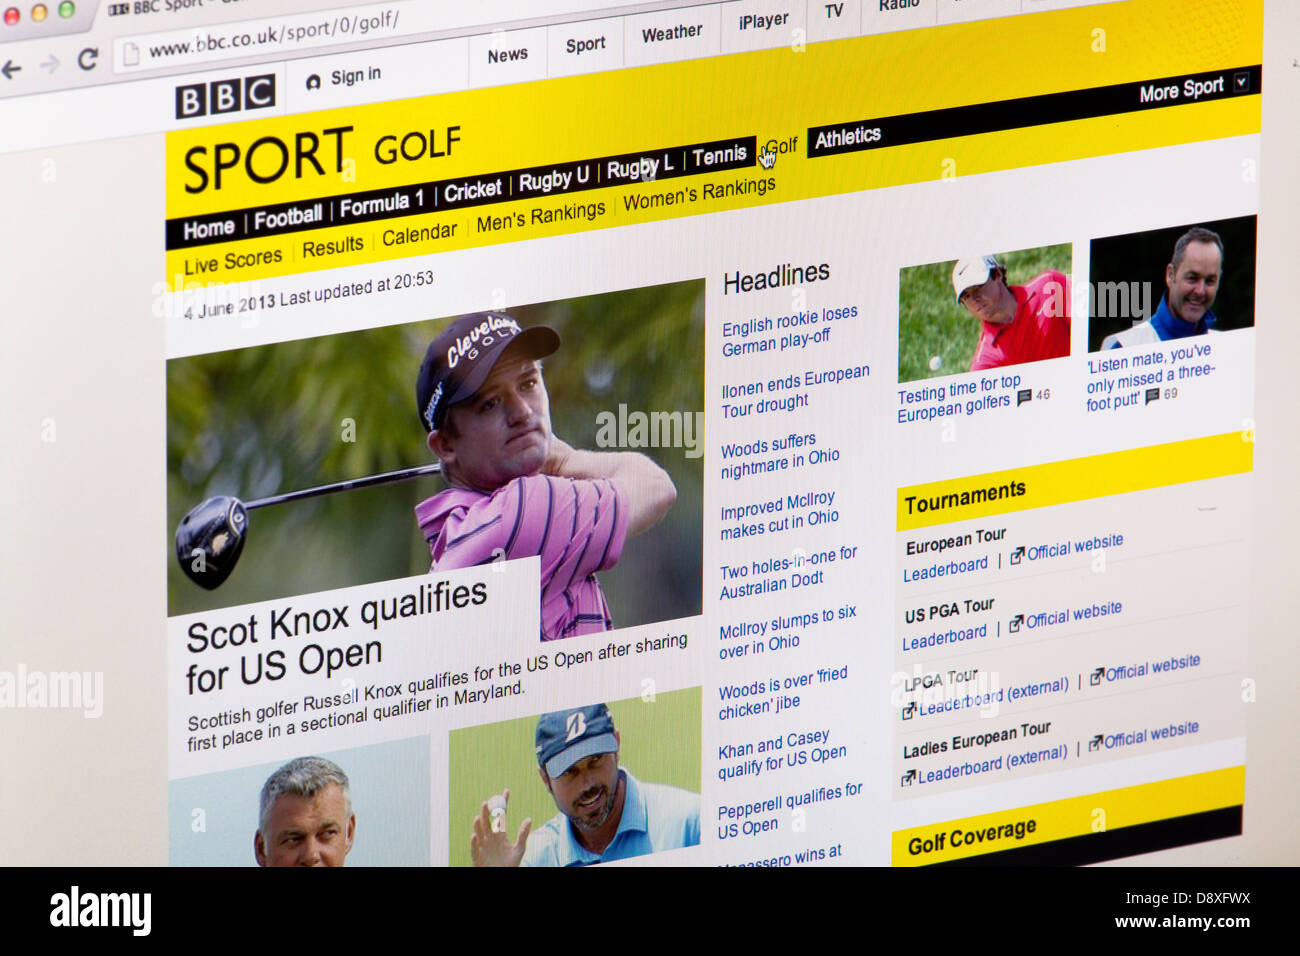 BBC Sport Golf News Homepage Website or web page on a laptop screen or computer monitor - Stock Image